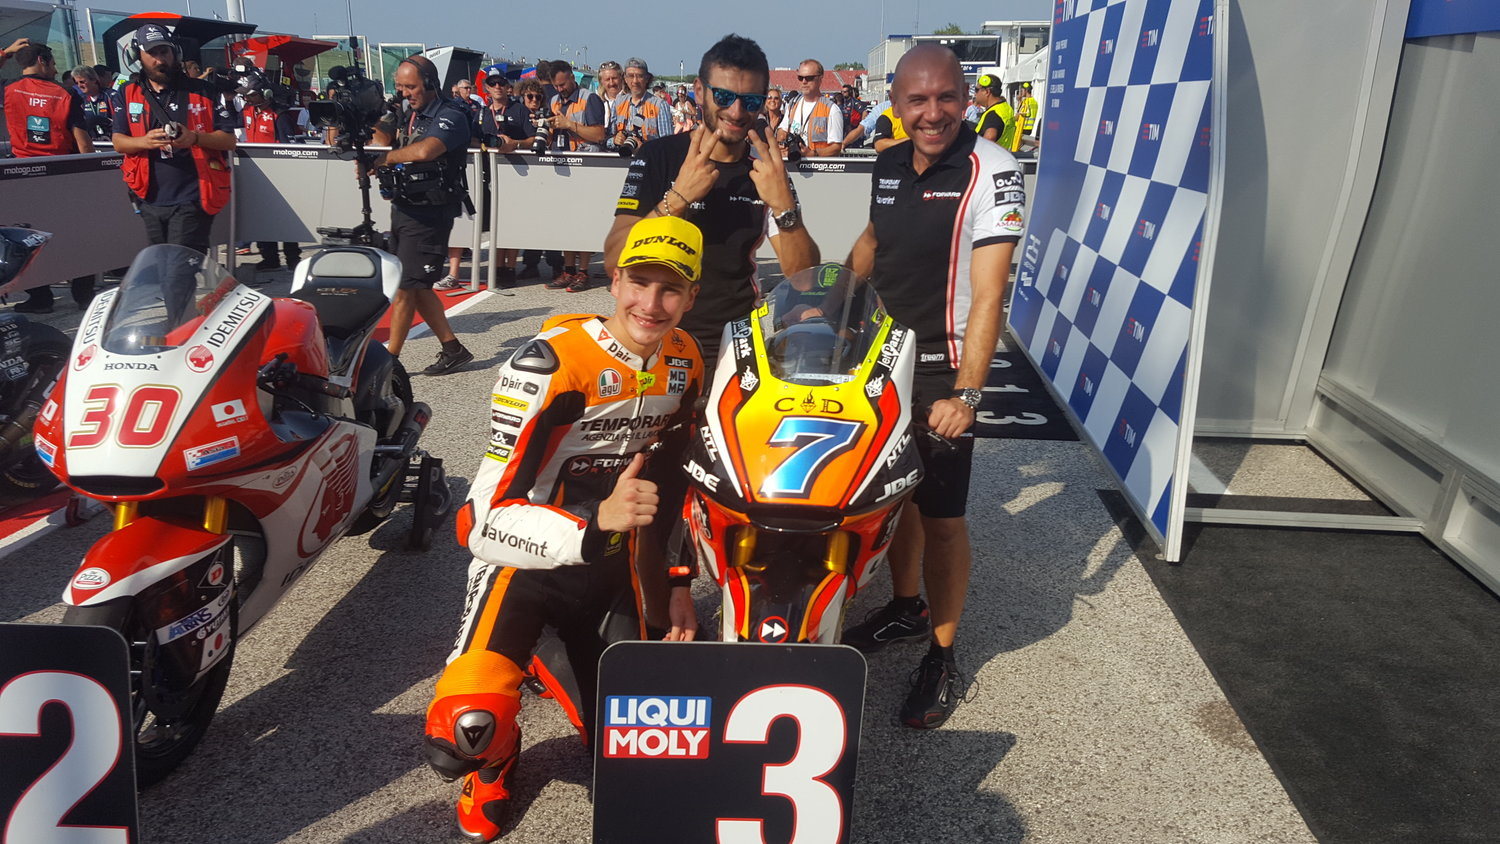 Fantastic front row for Baldassarri at home Grand Prix in Misano